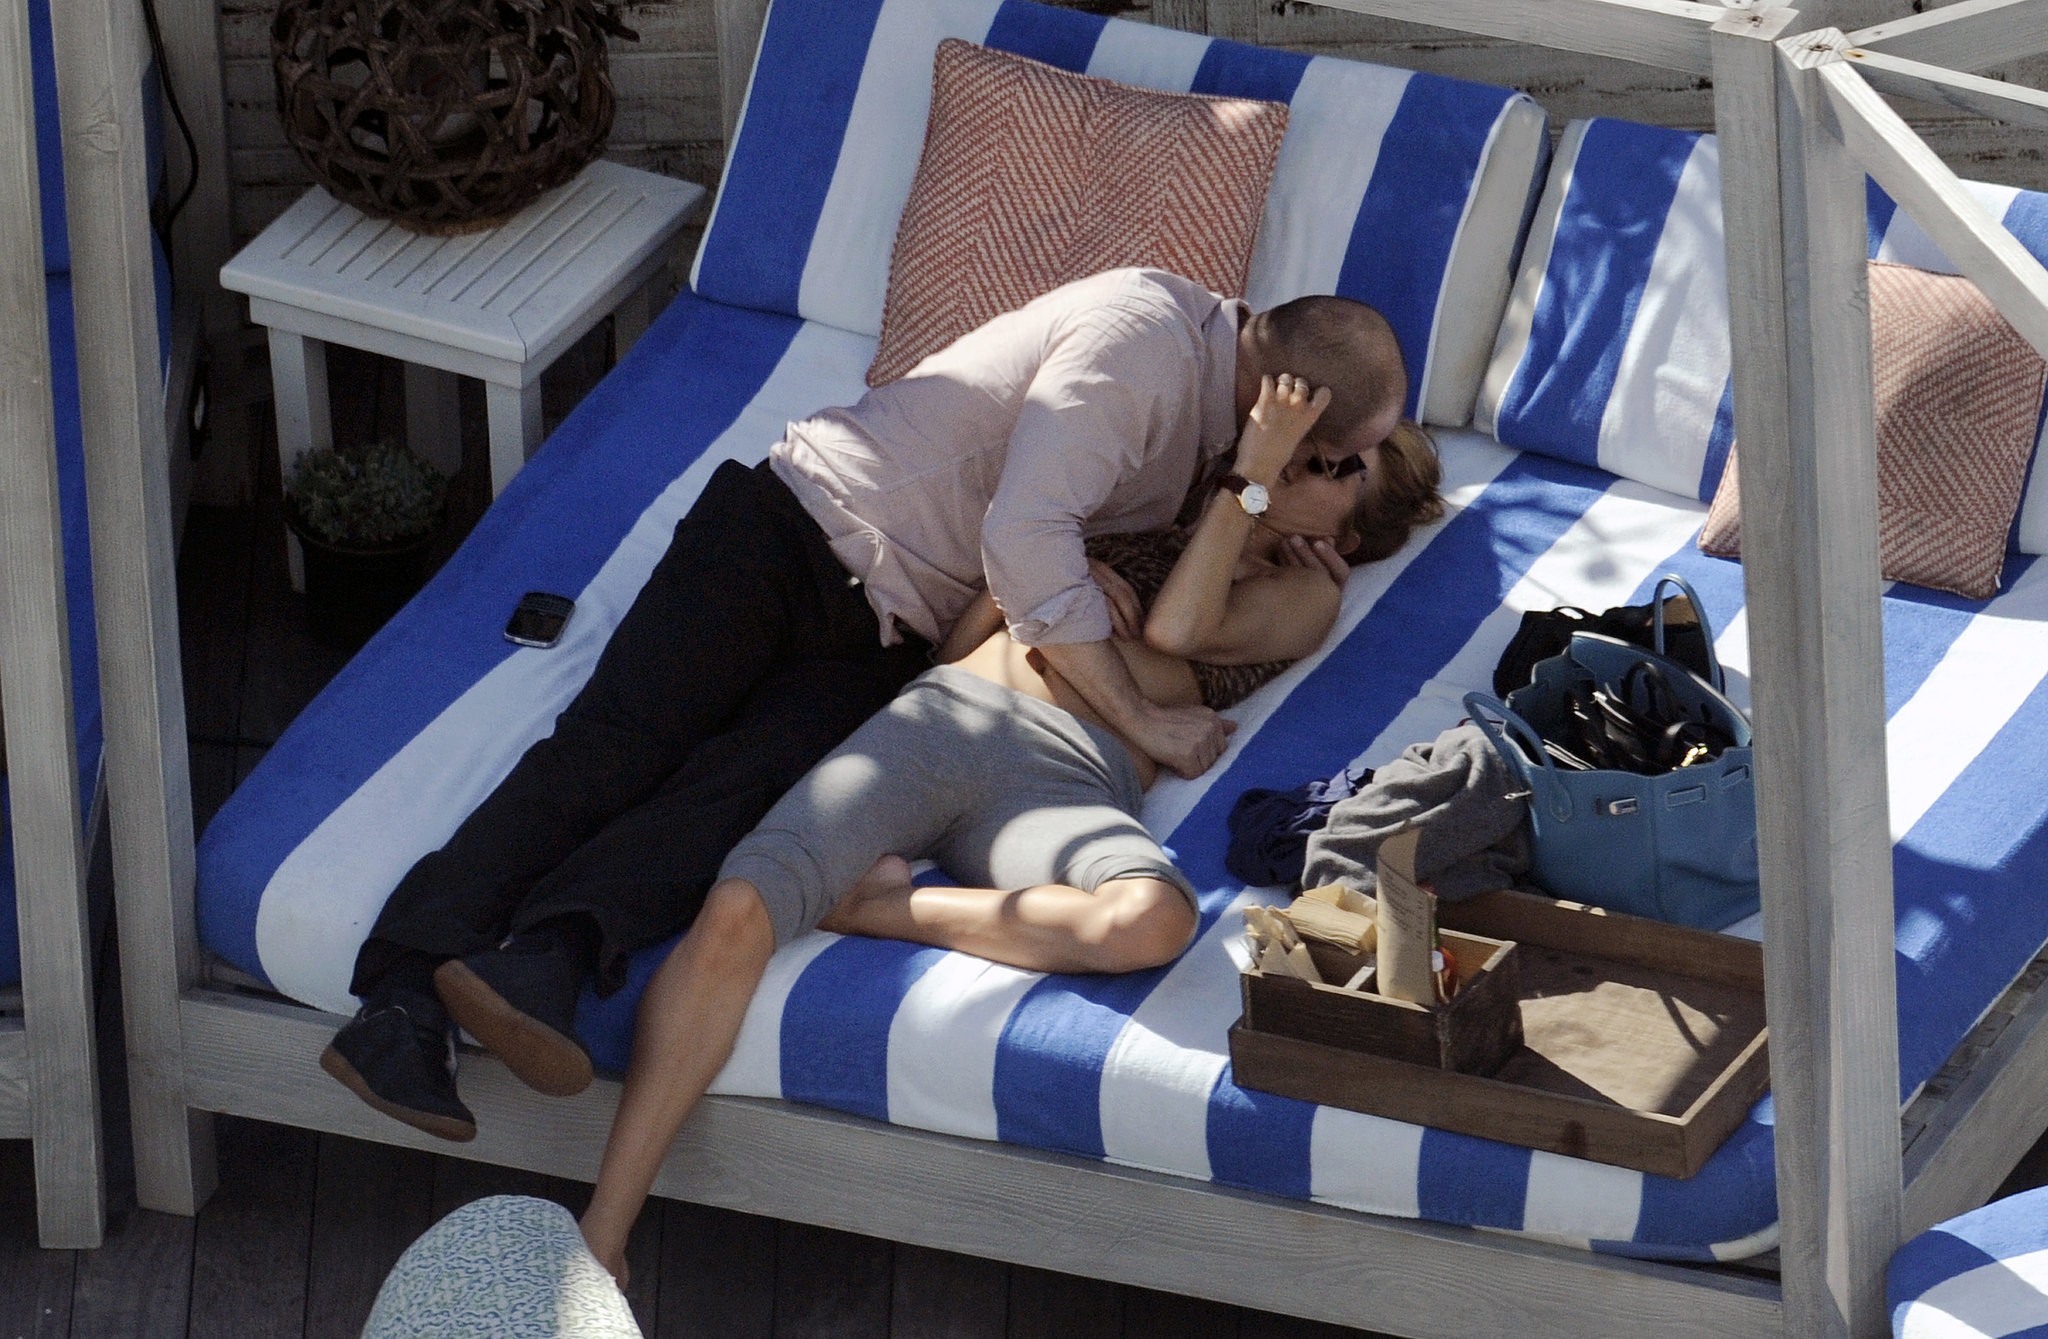 Jason Statham and Rosie Huntington-Whiteley packed on the poolside PDA in Miami back in January 2012.